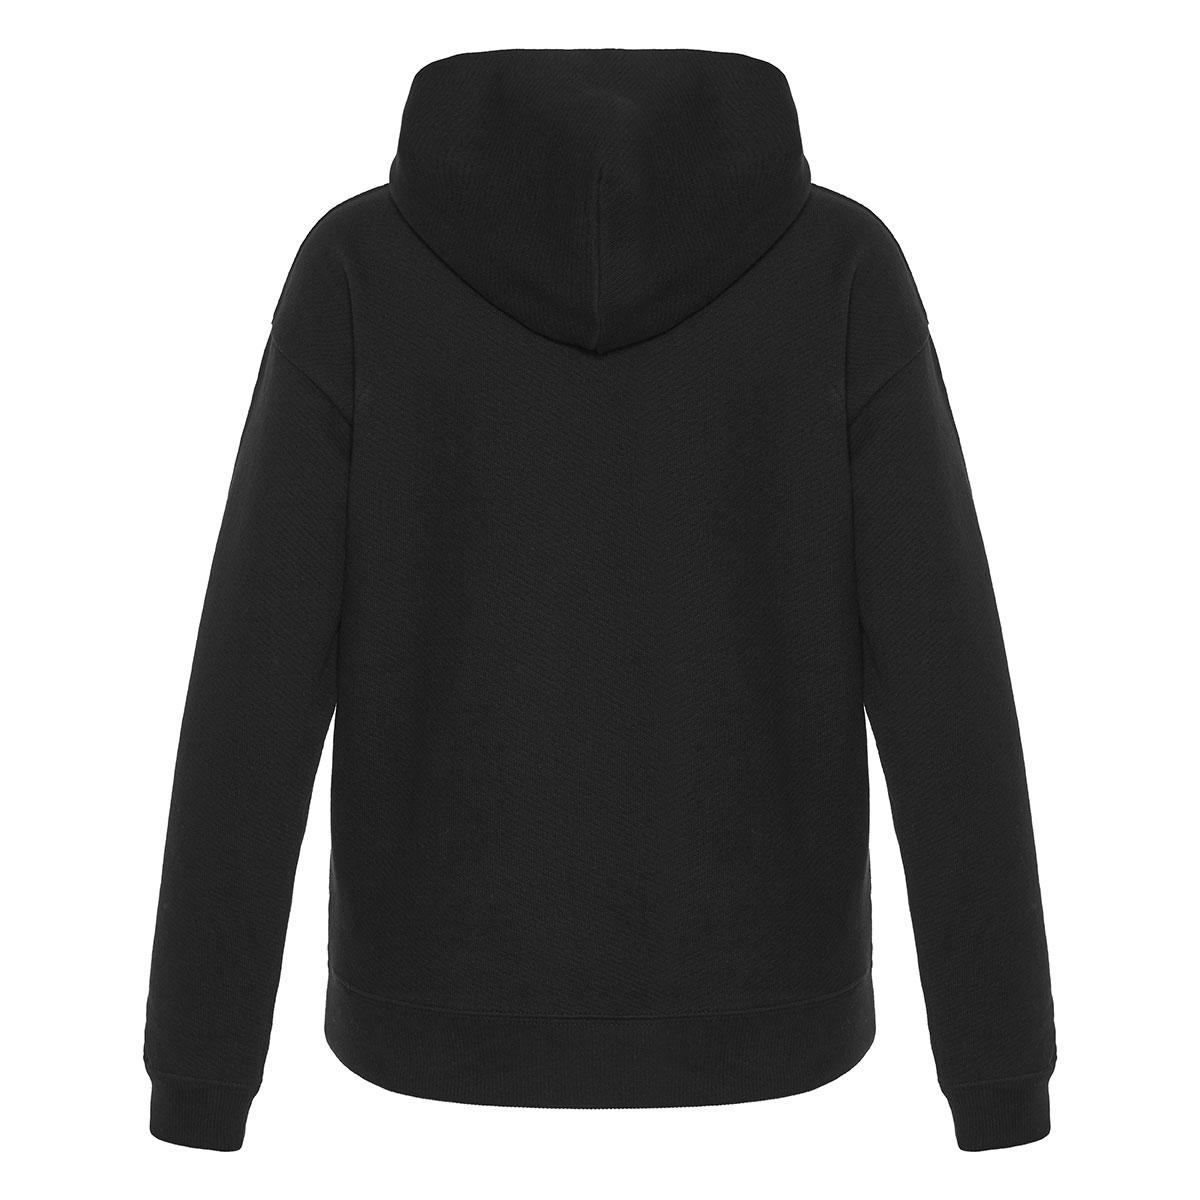 Glow-in-the-dark logo hoodie